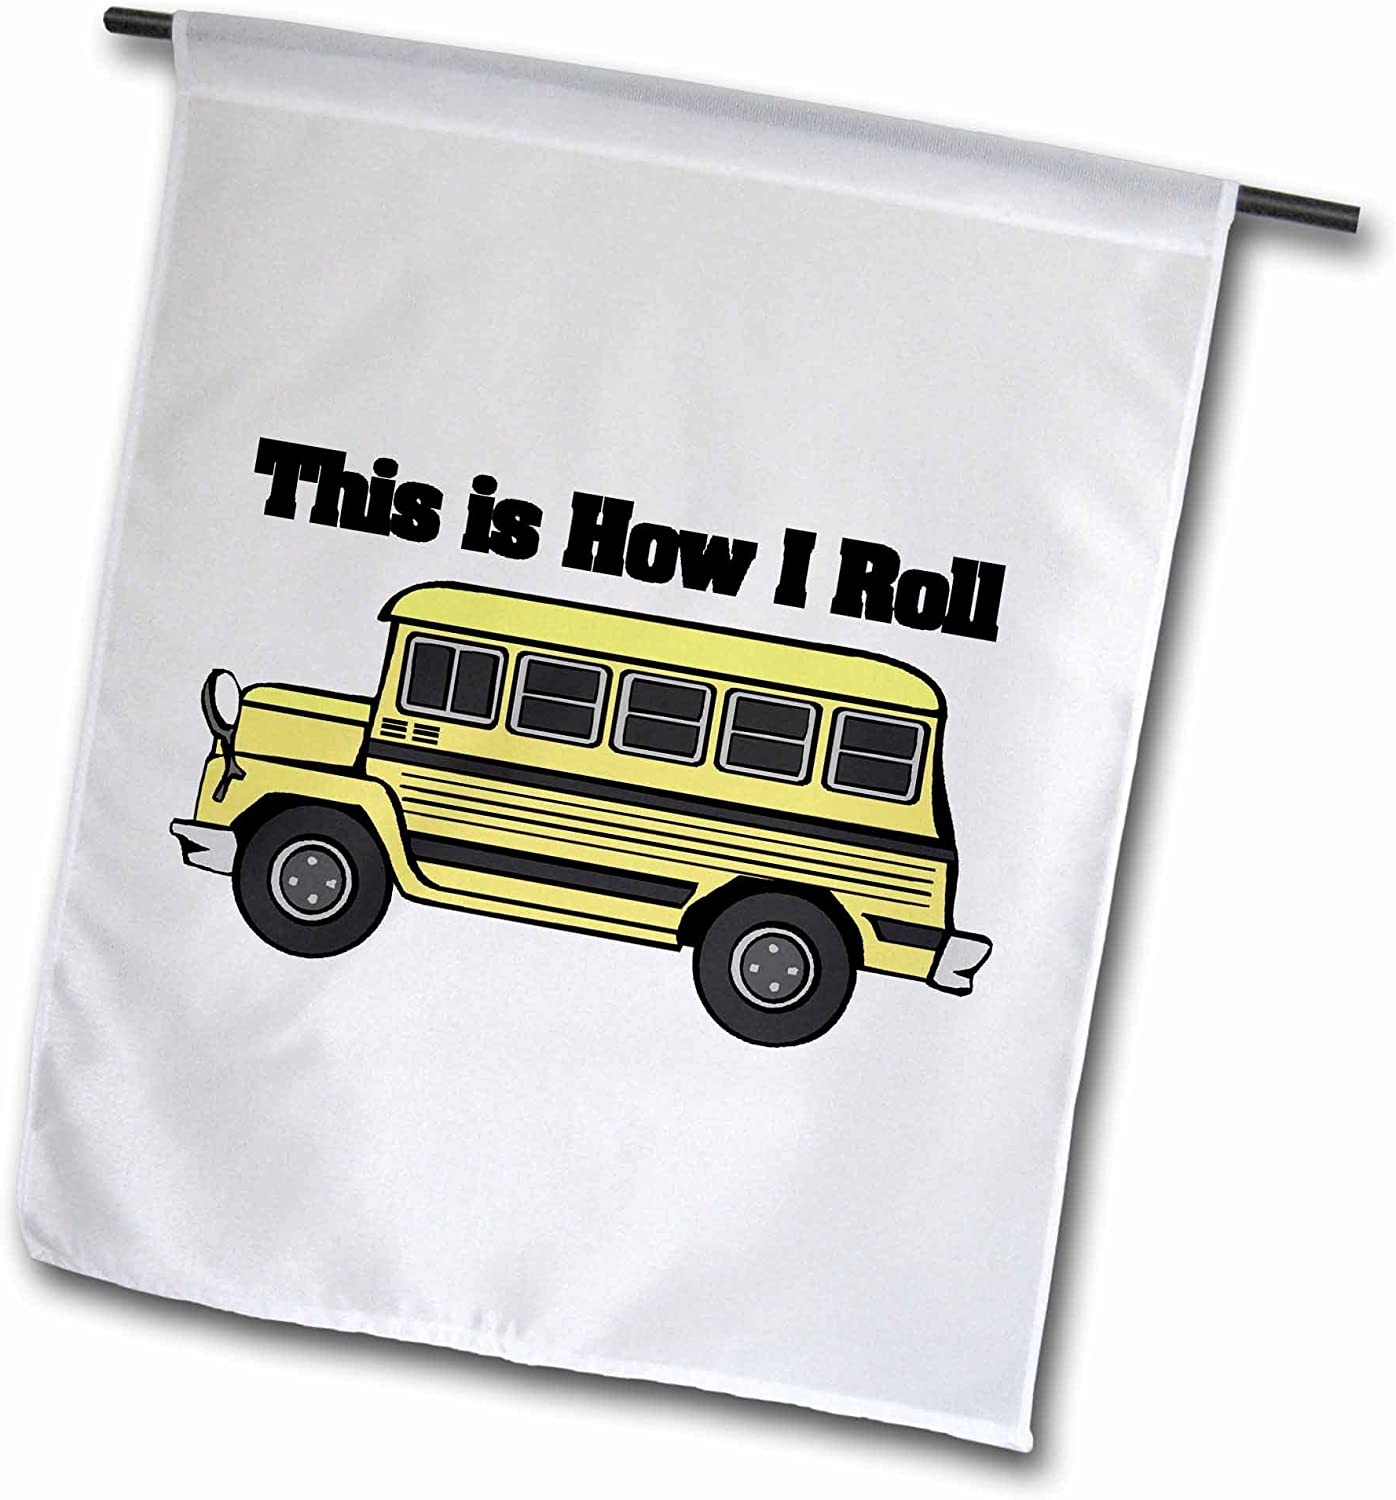 3dRose Fl_102559_1 This is How I Roll Short Yellow School Bus Garden Flag, 12 by 18-Inch